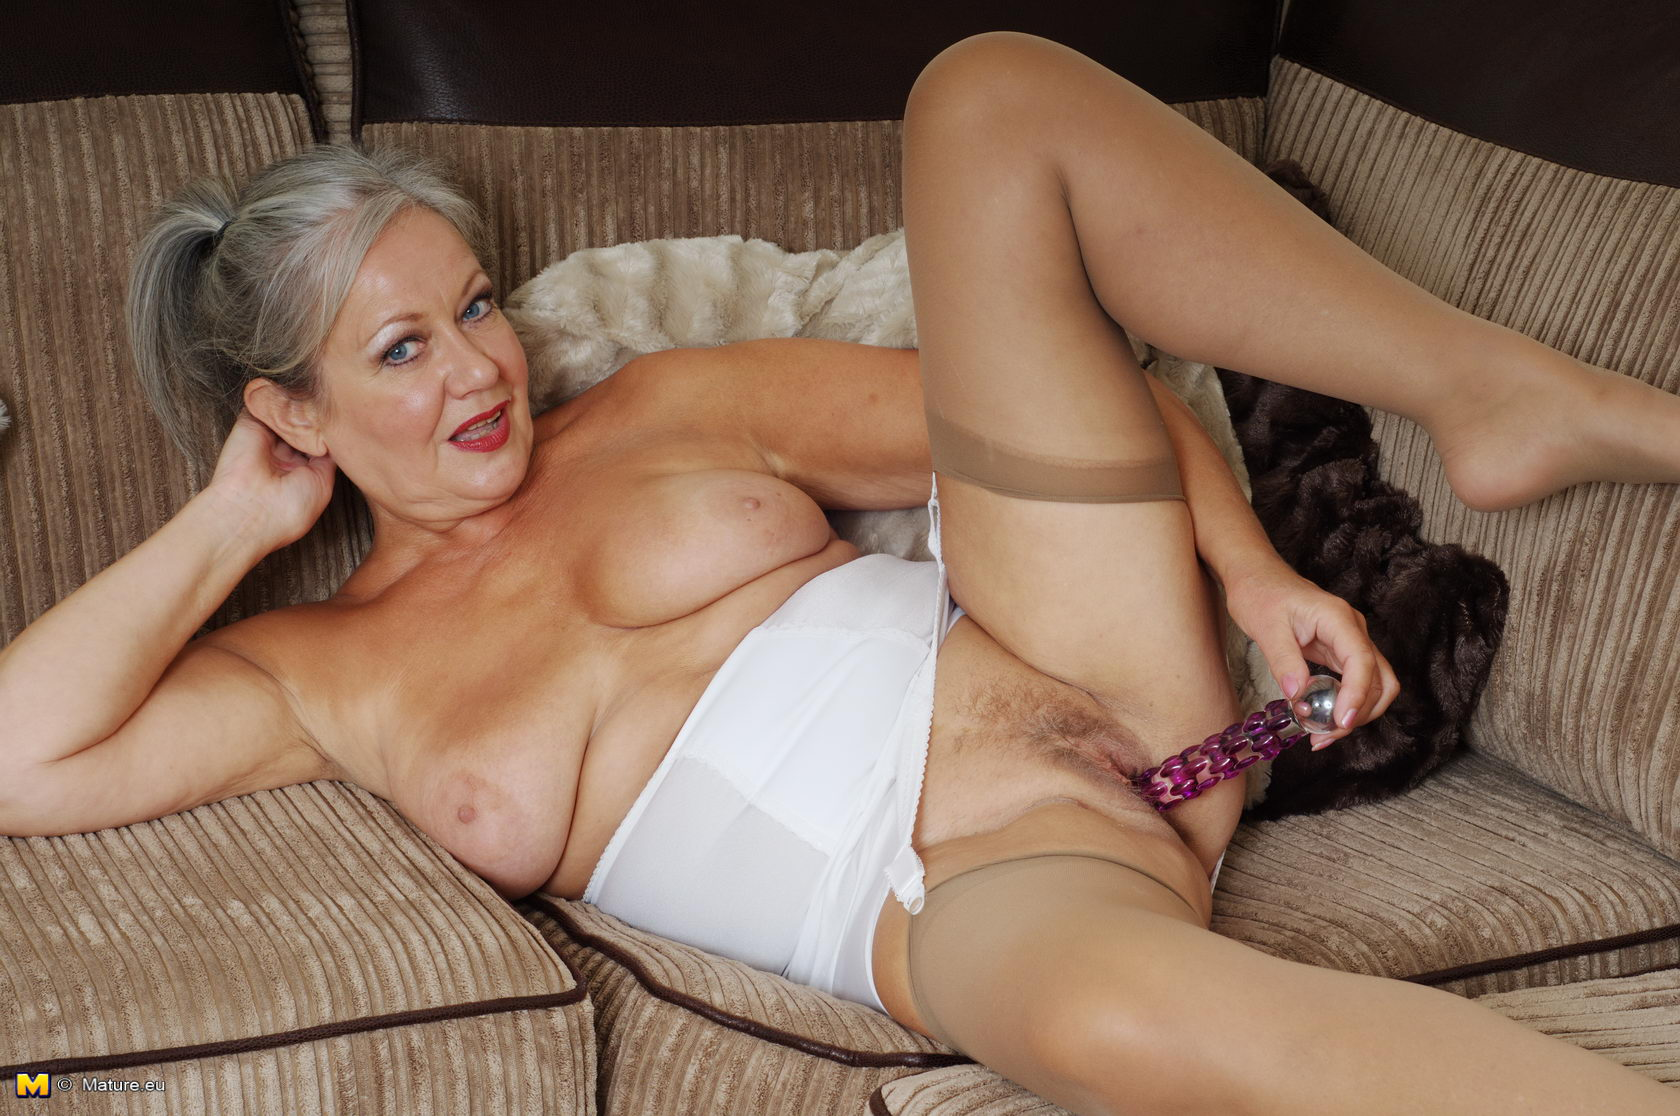 Nude tits mom big tits and law